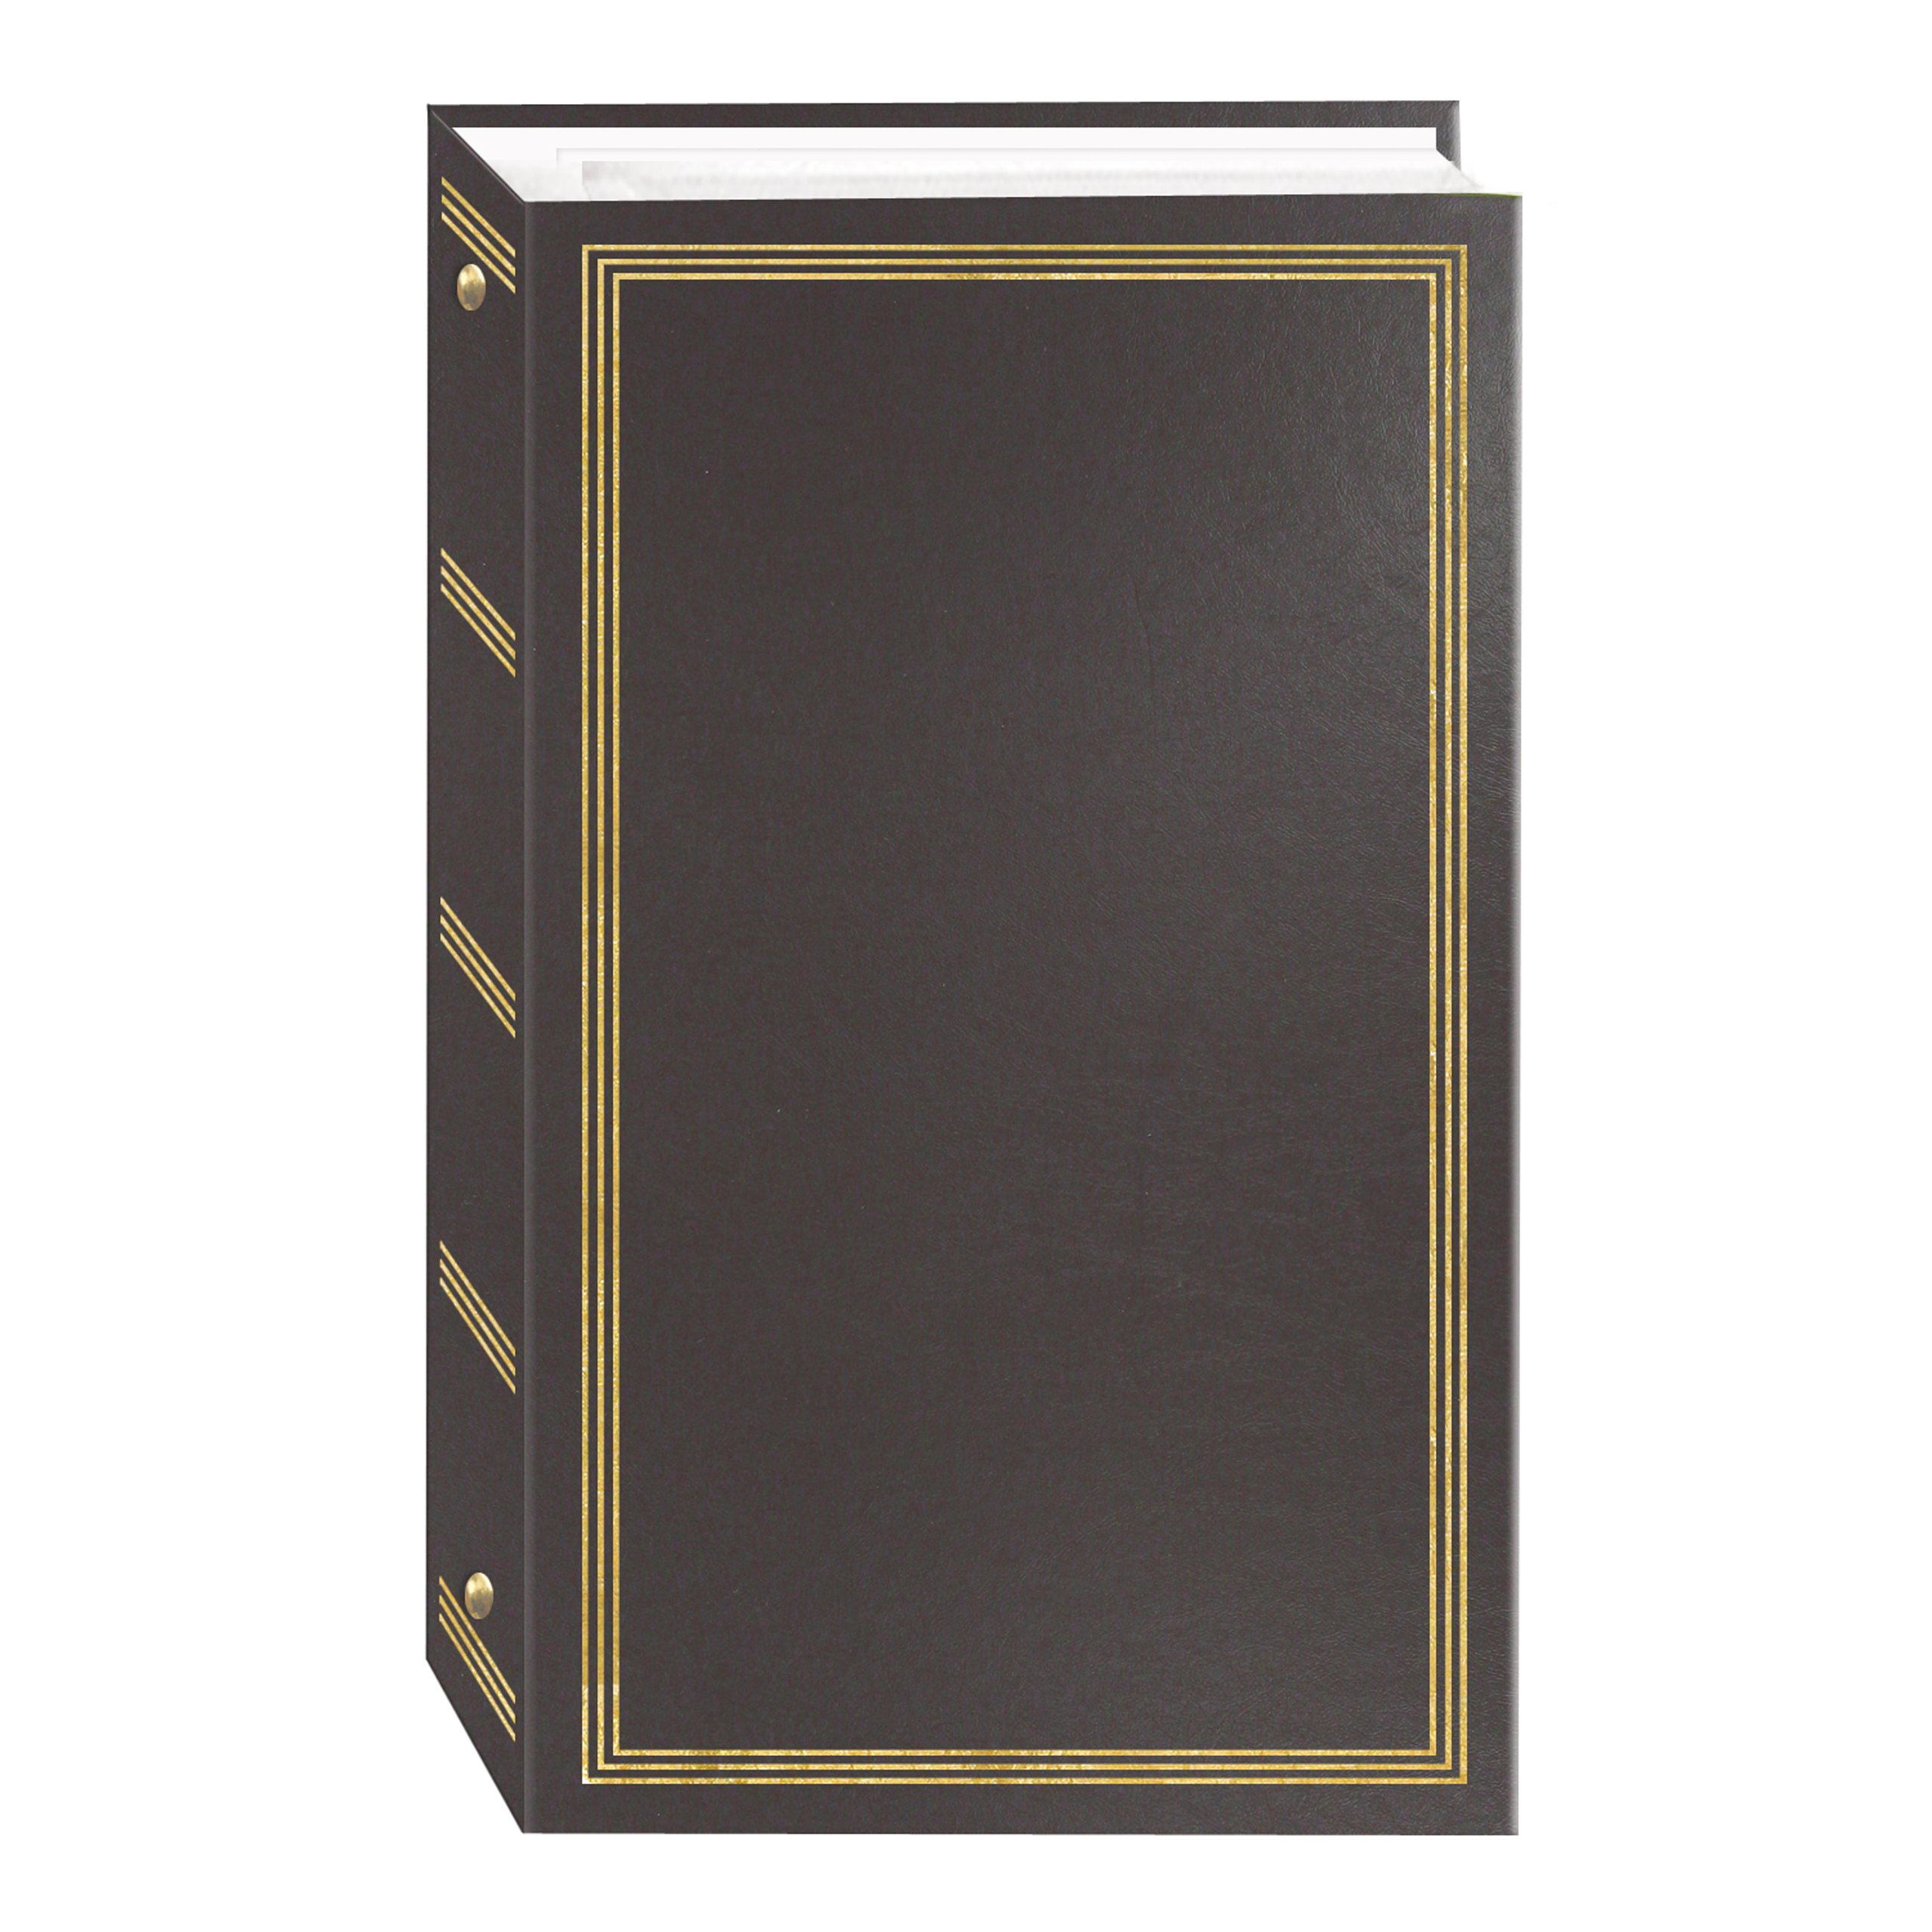 3-Ring Photo Album 300 Pockets Hold 4x6 Photos, Gray by Pioneer Photo Albums